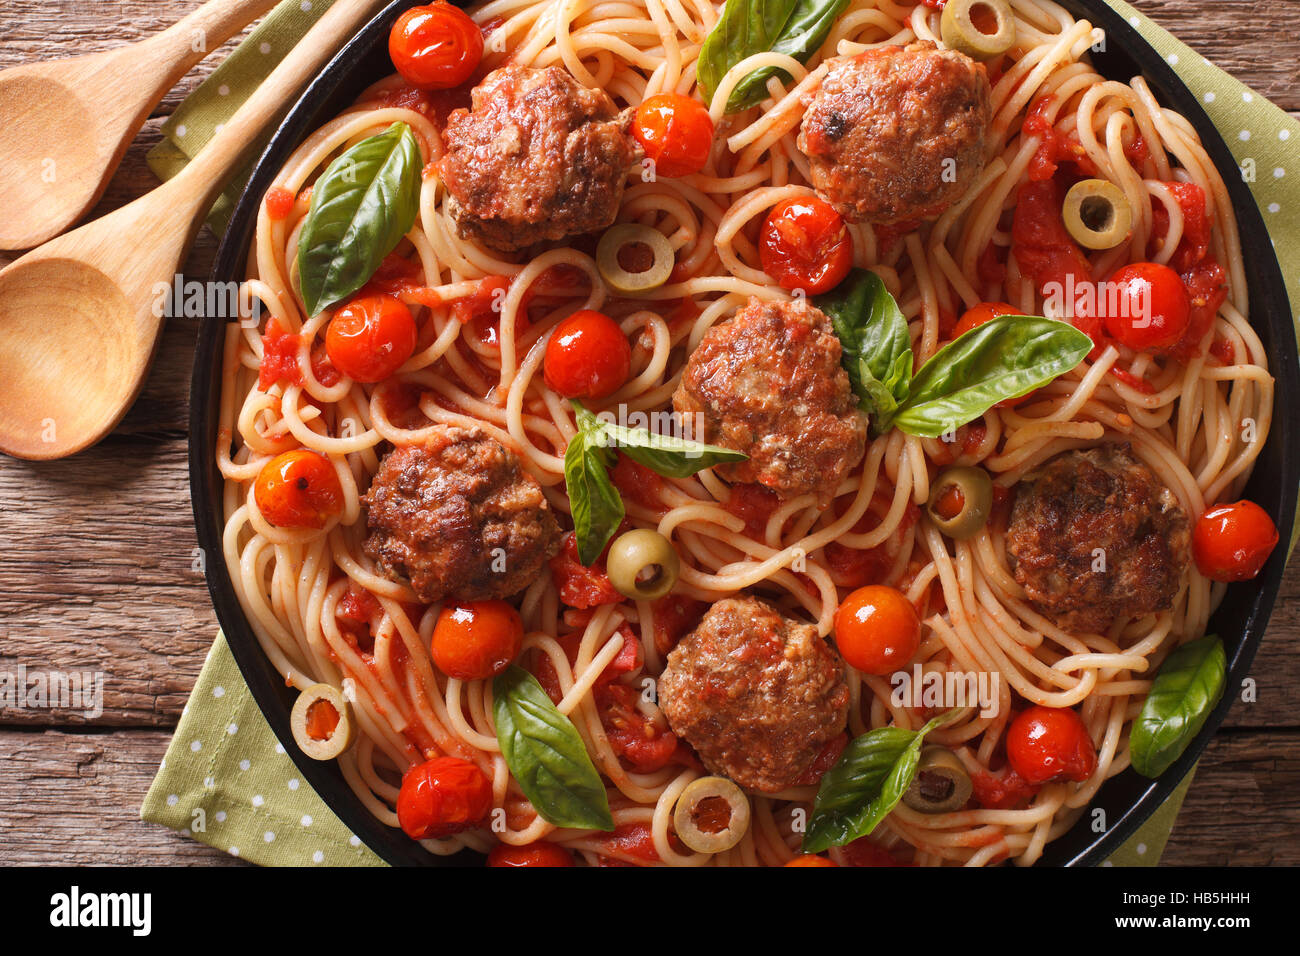 Italian Food Spaghetti With Meatballs Olives Basil And Tomato Sauce Closeup On A Plate Horizontal View From Above